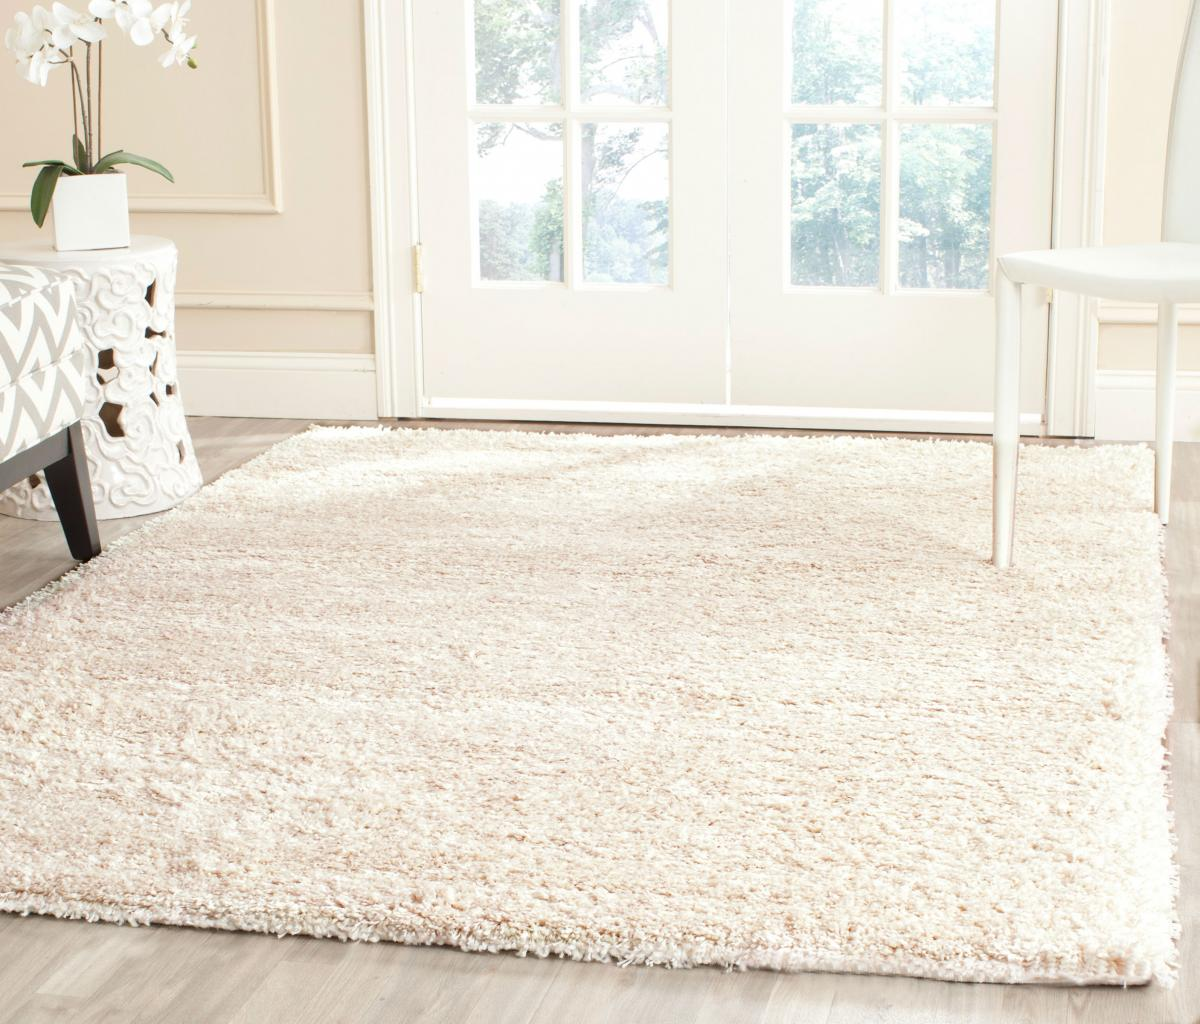 Rug sg165 1212 new york shag new york shag shag area for Area rugs new york